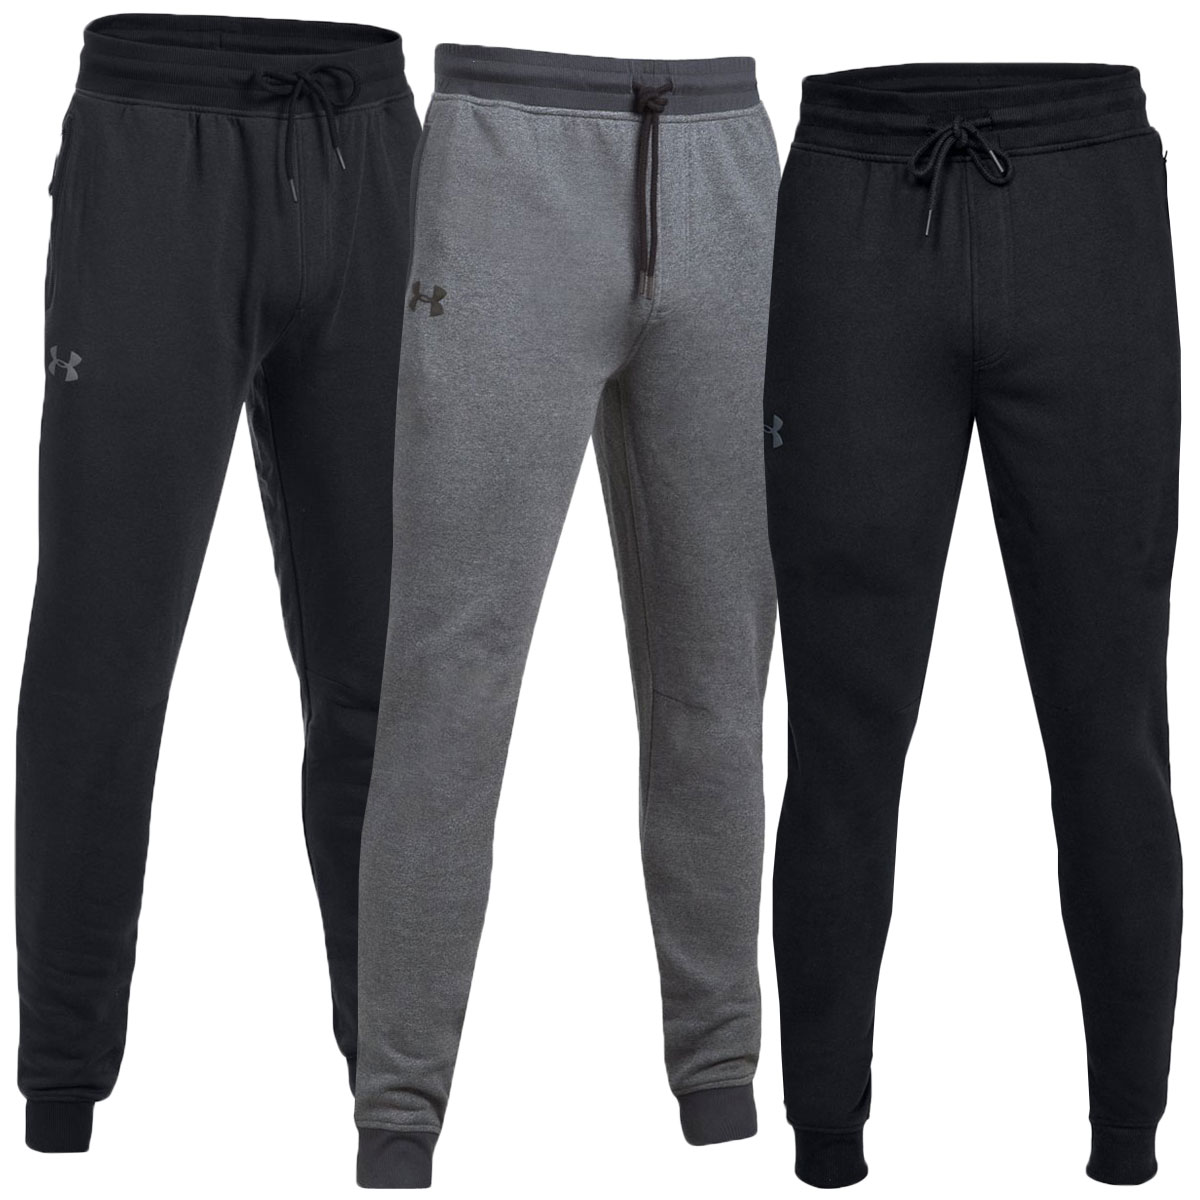 104876d08 Details about Under Armour Mens Threadborne Stacked Jogger Training Sports  Gym Bottoms